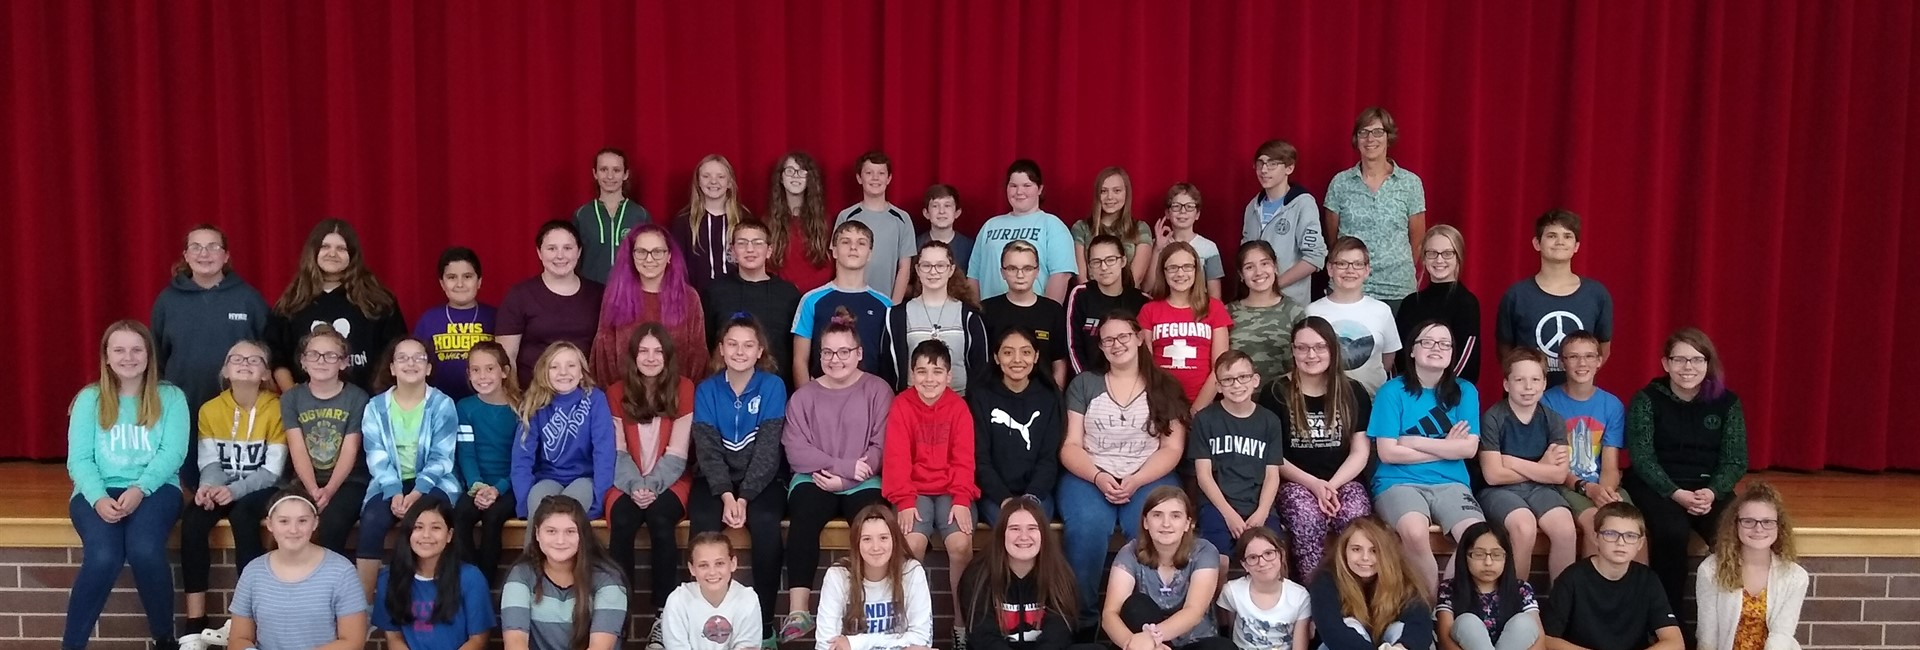 KVMS Student Council Recognized as an Indiana Honor Council